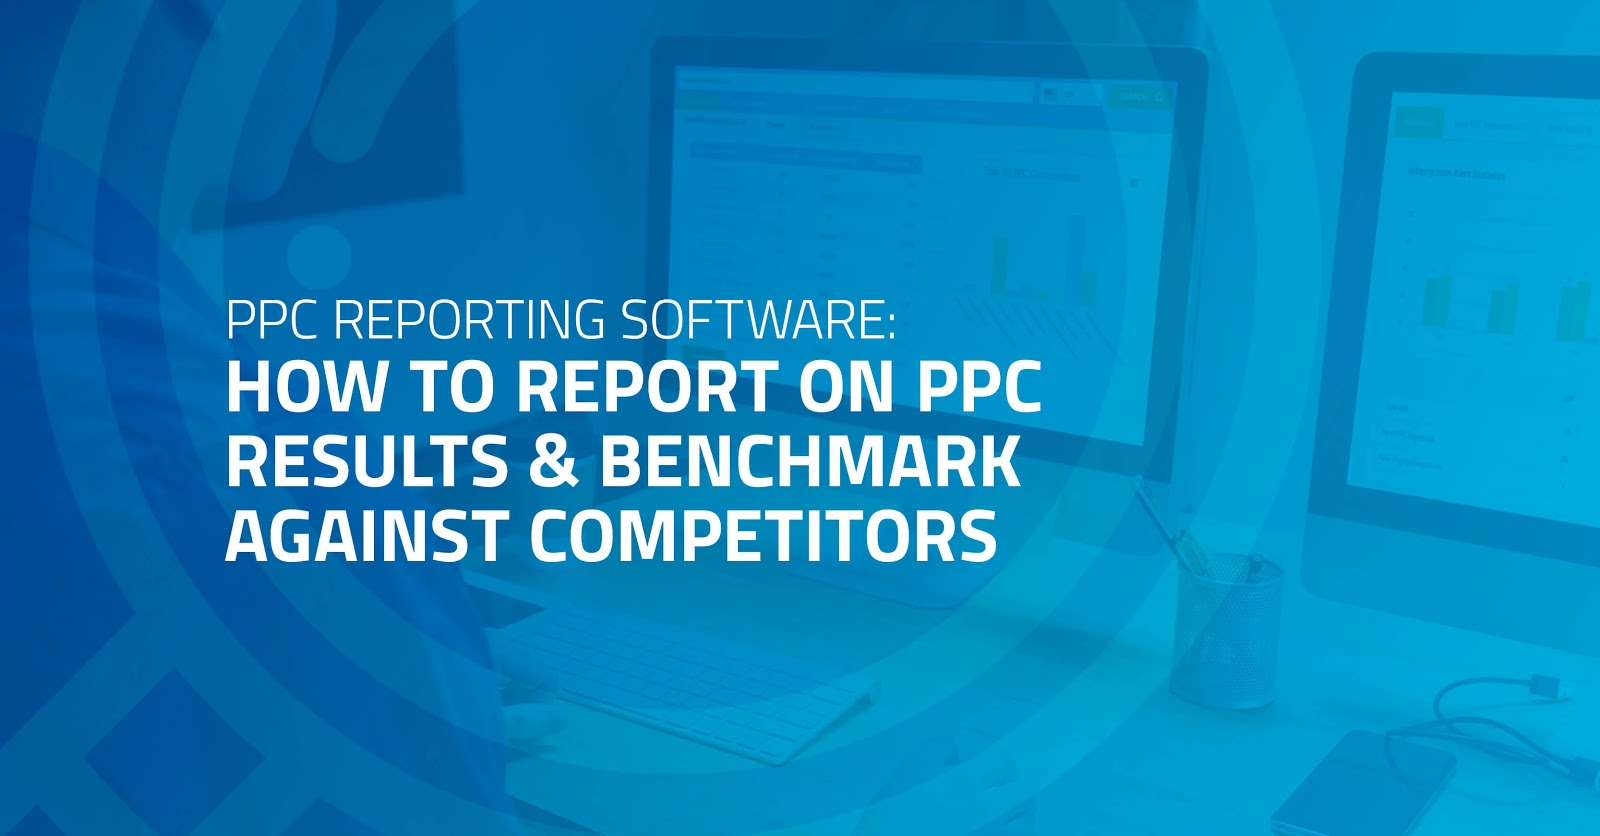 PPC Reporting Software: How to Report on PPC Results & Benchmark Against Competitors